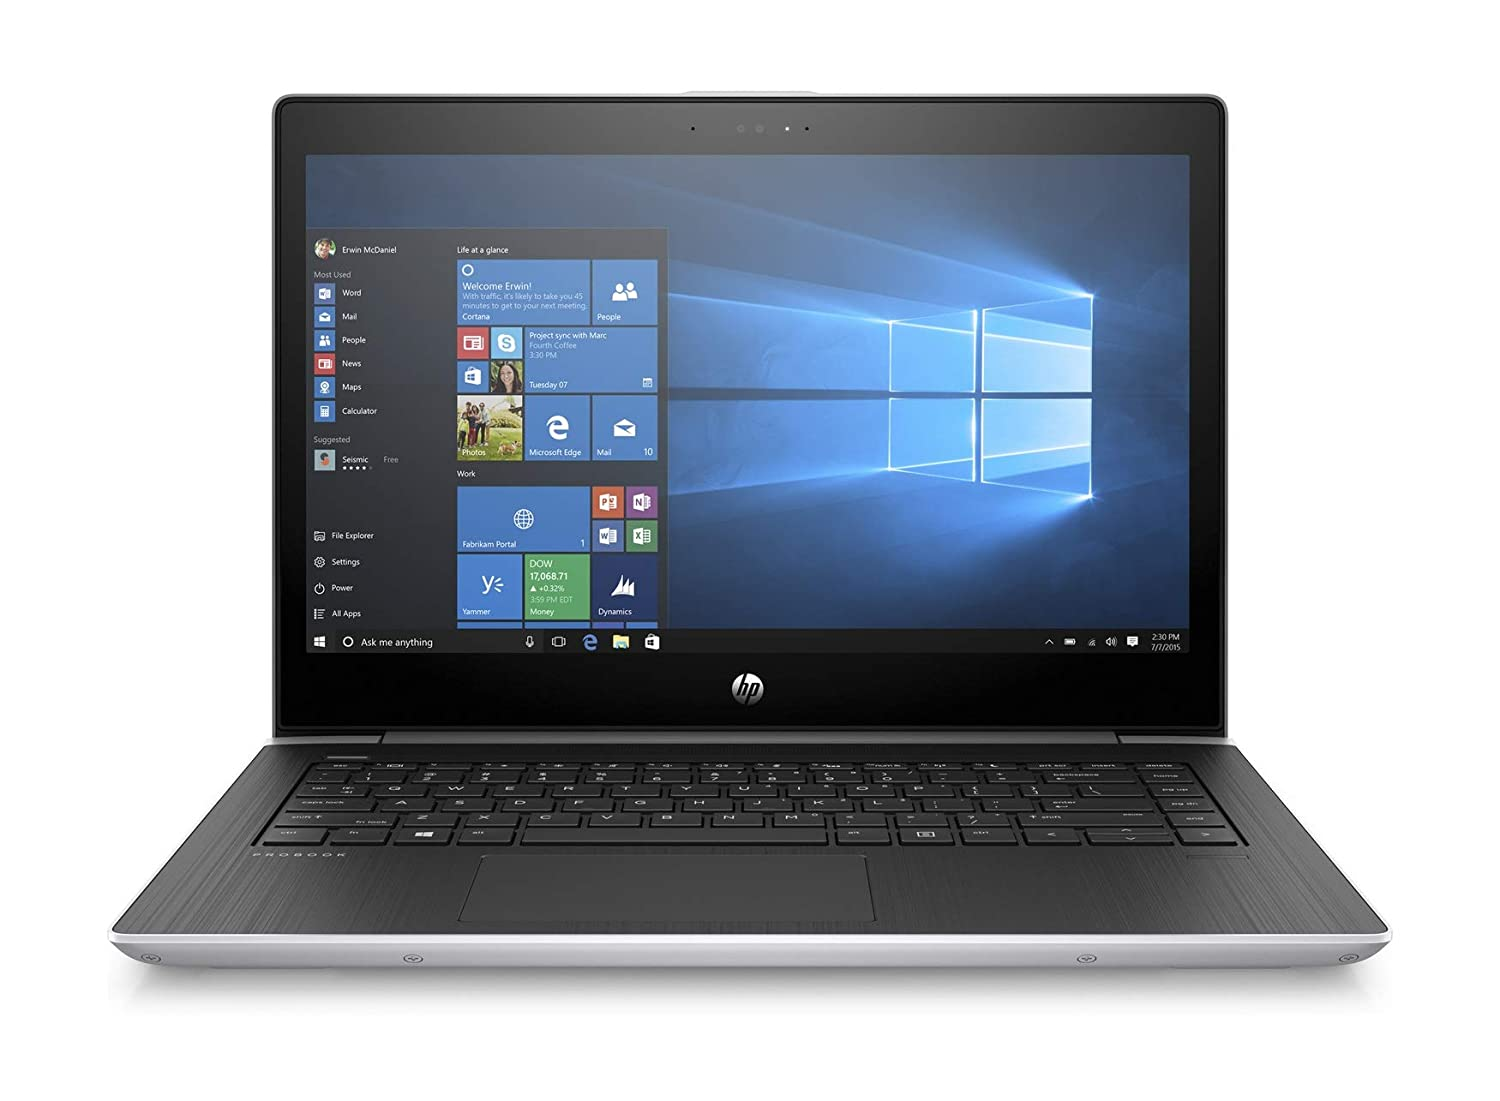 Amazon.com: HP Pavilion 15-cc183cl Touchscreen Laptop - Intel Core i7-8550U - 4GB NVIDIA - 12 GB RAM 1TB HD: Computers & Accessories